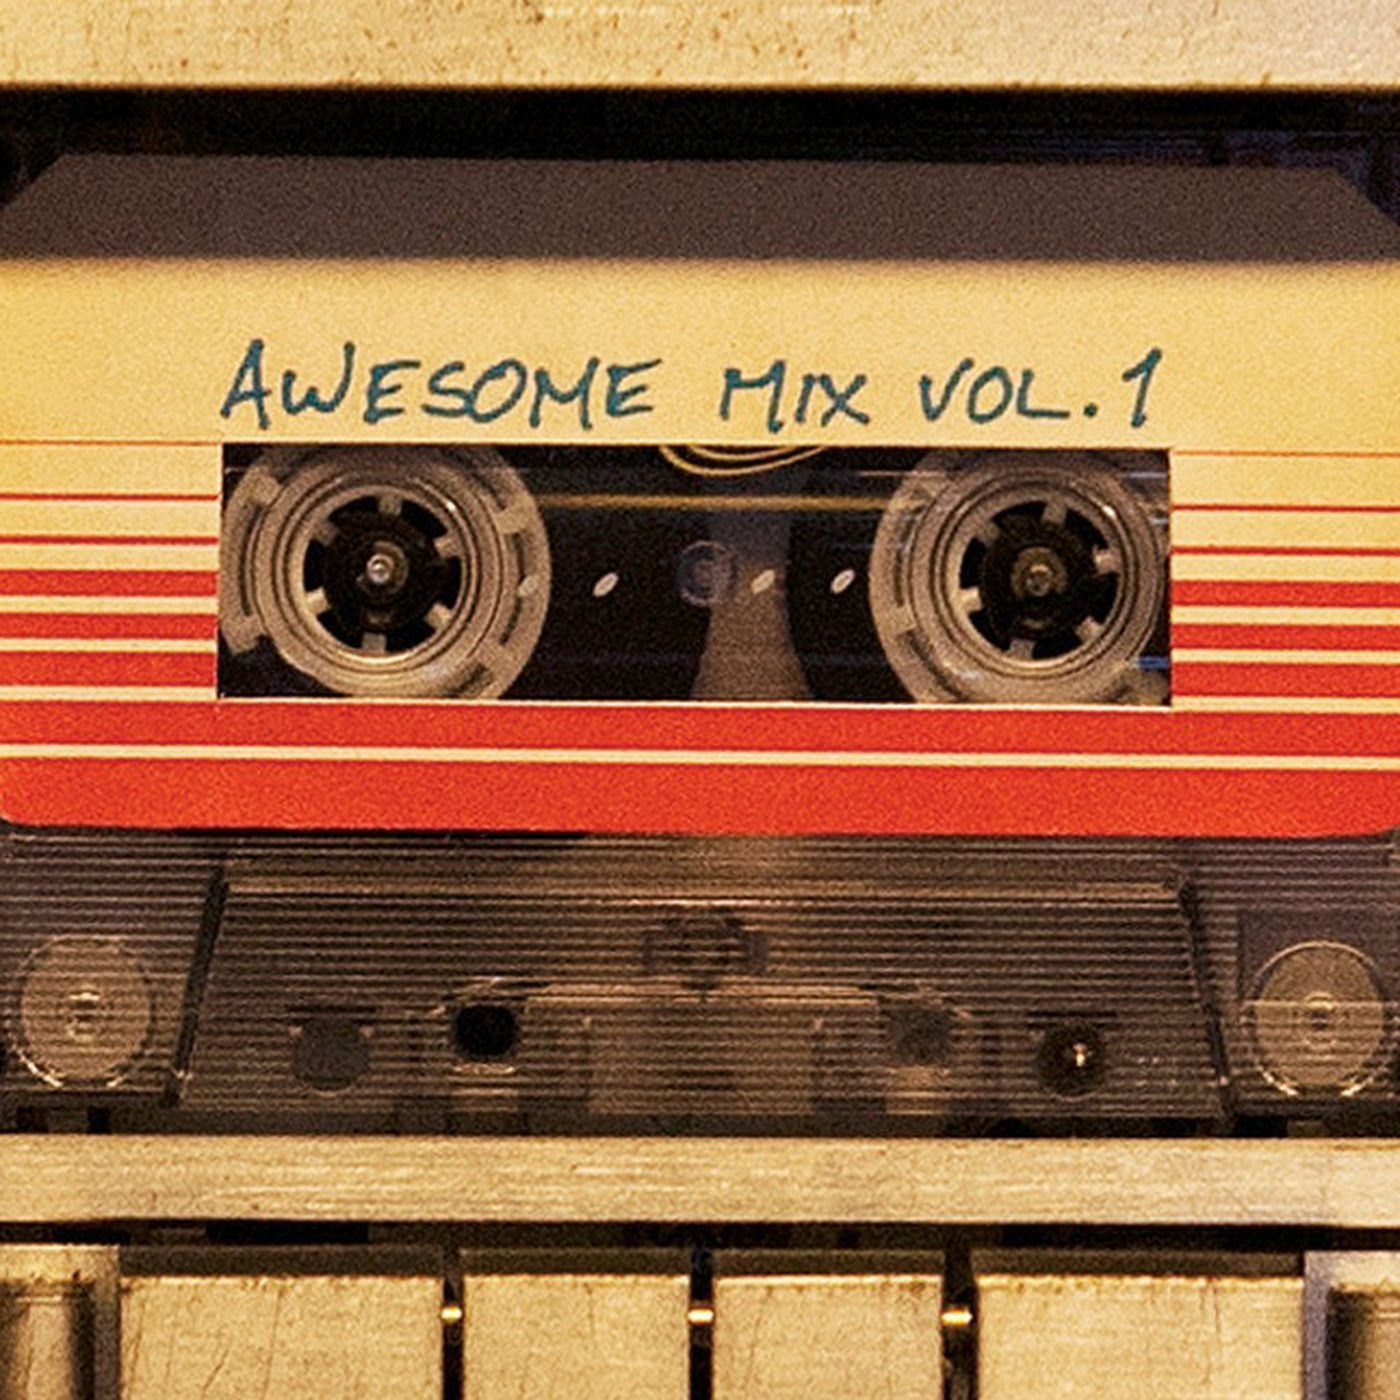 guardians of the galaxy awesome mix vol. 1 album download torrent